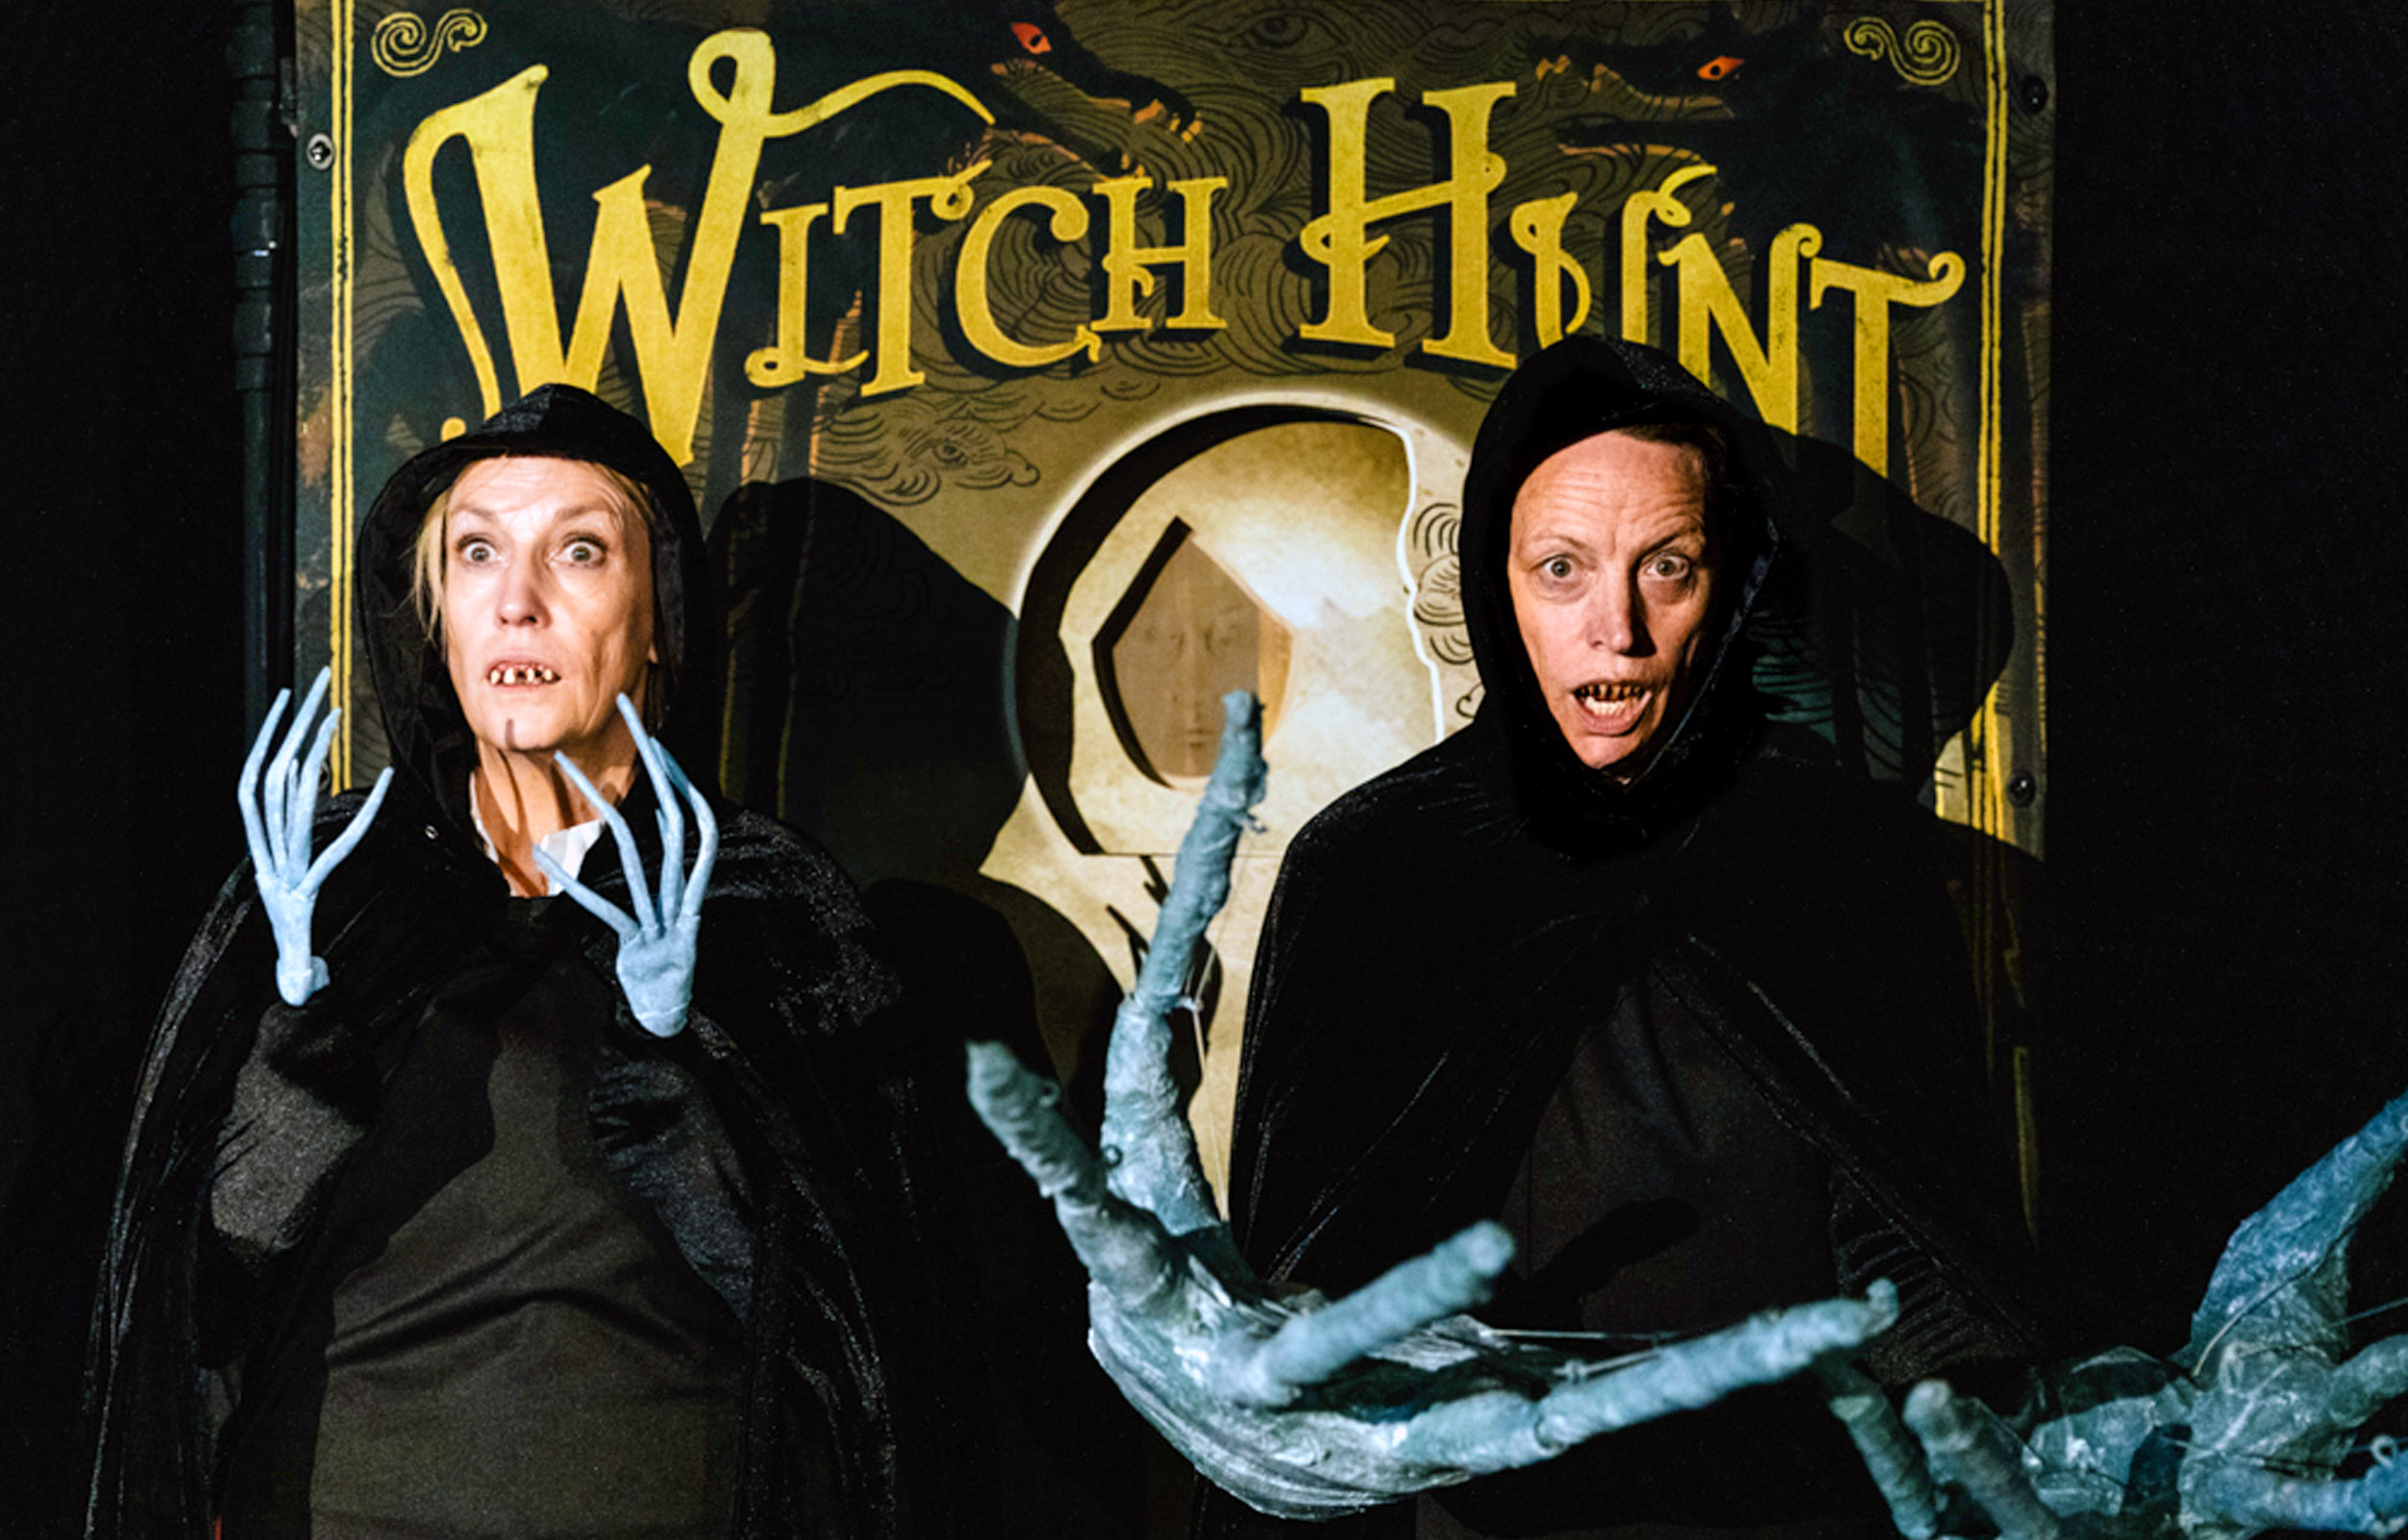 Witch Hunt at Edinburgh Fringe 2019 - August 2019